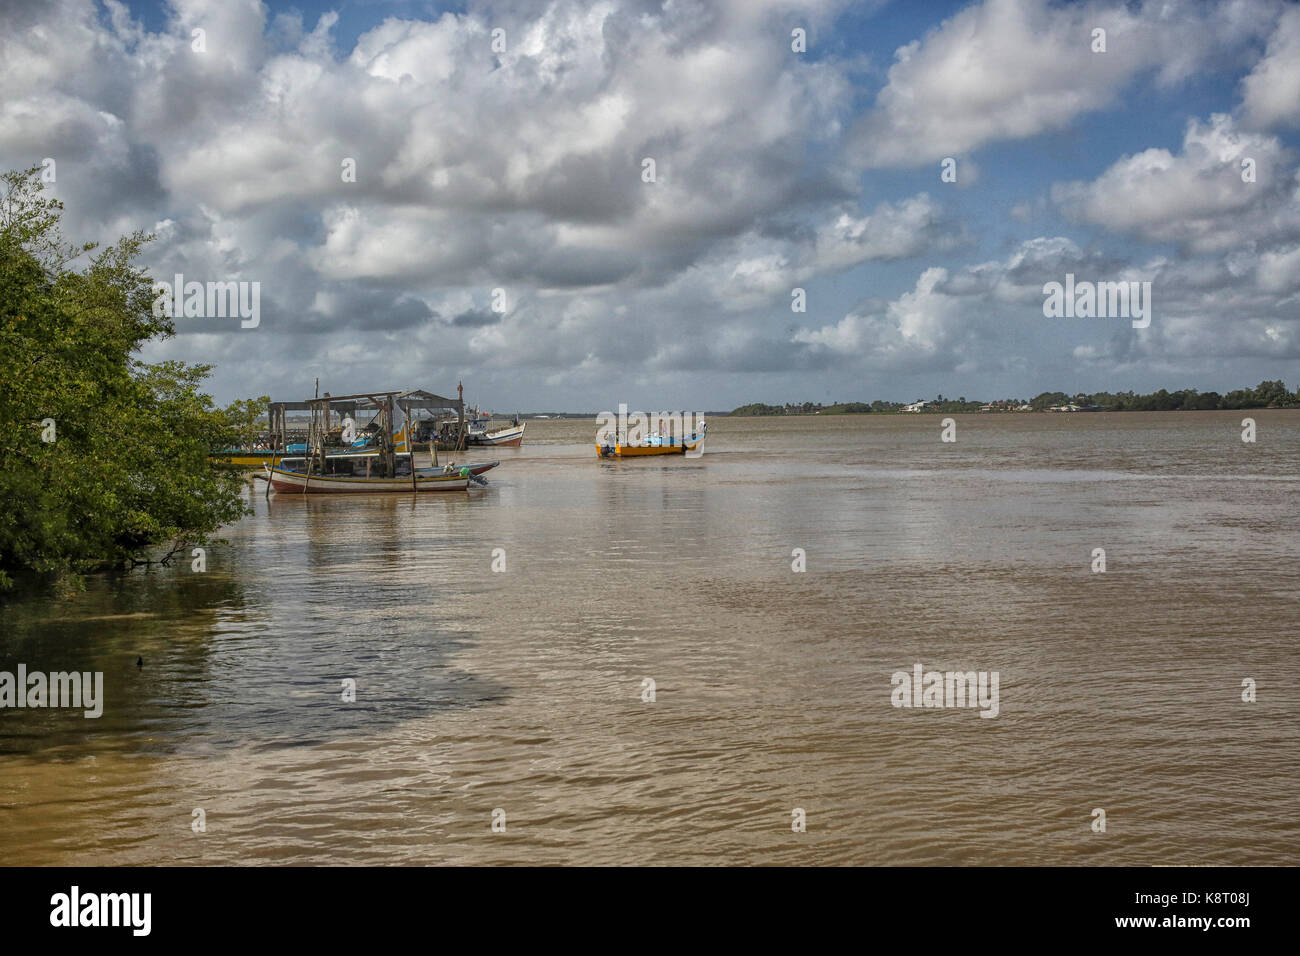 Suriname river with boats near the shore - Stock Image